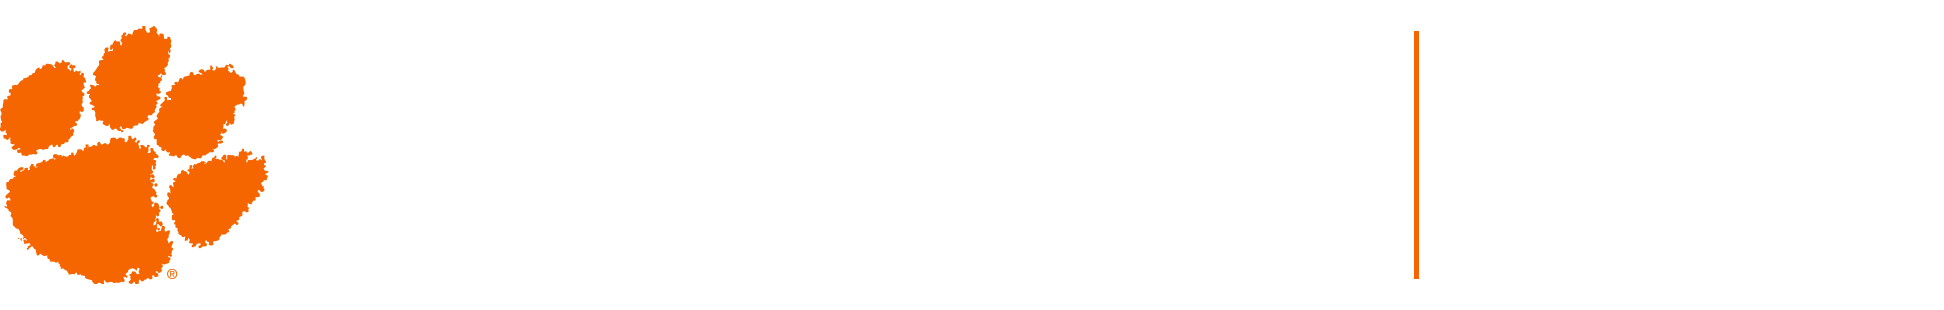 Research logo for College of Engineering, Computing and Applied Sciences, ADRGS Office